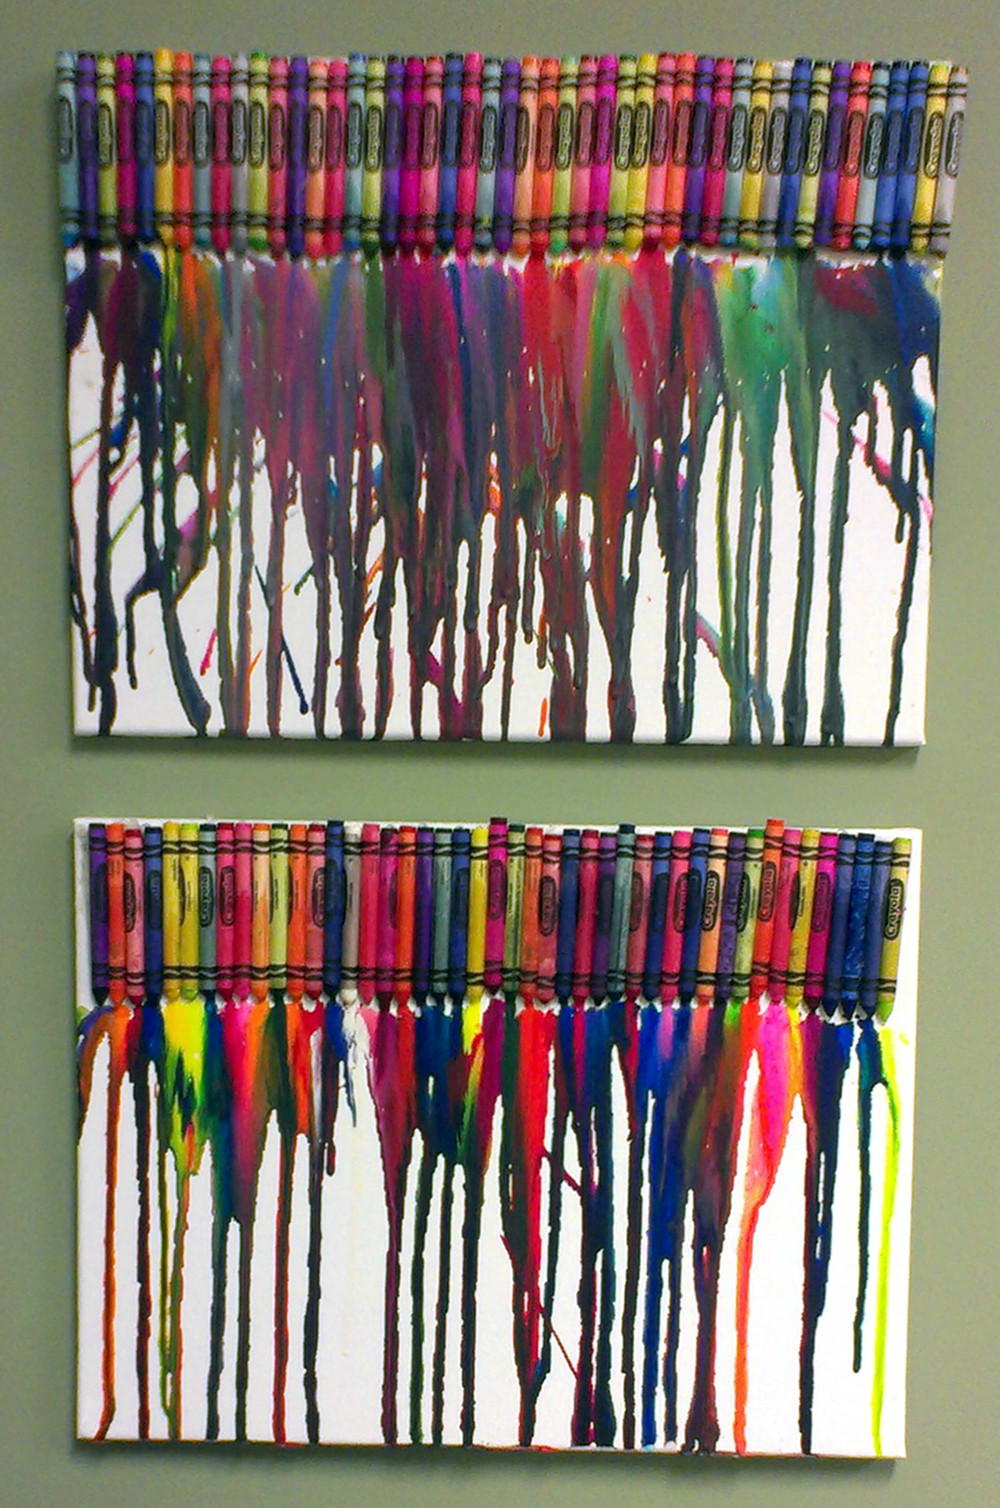 Crayon Canvas Paintings - DIY Art Project for your walls that's both inexpensive and easy